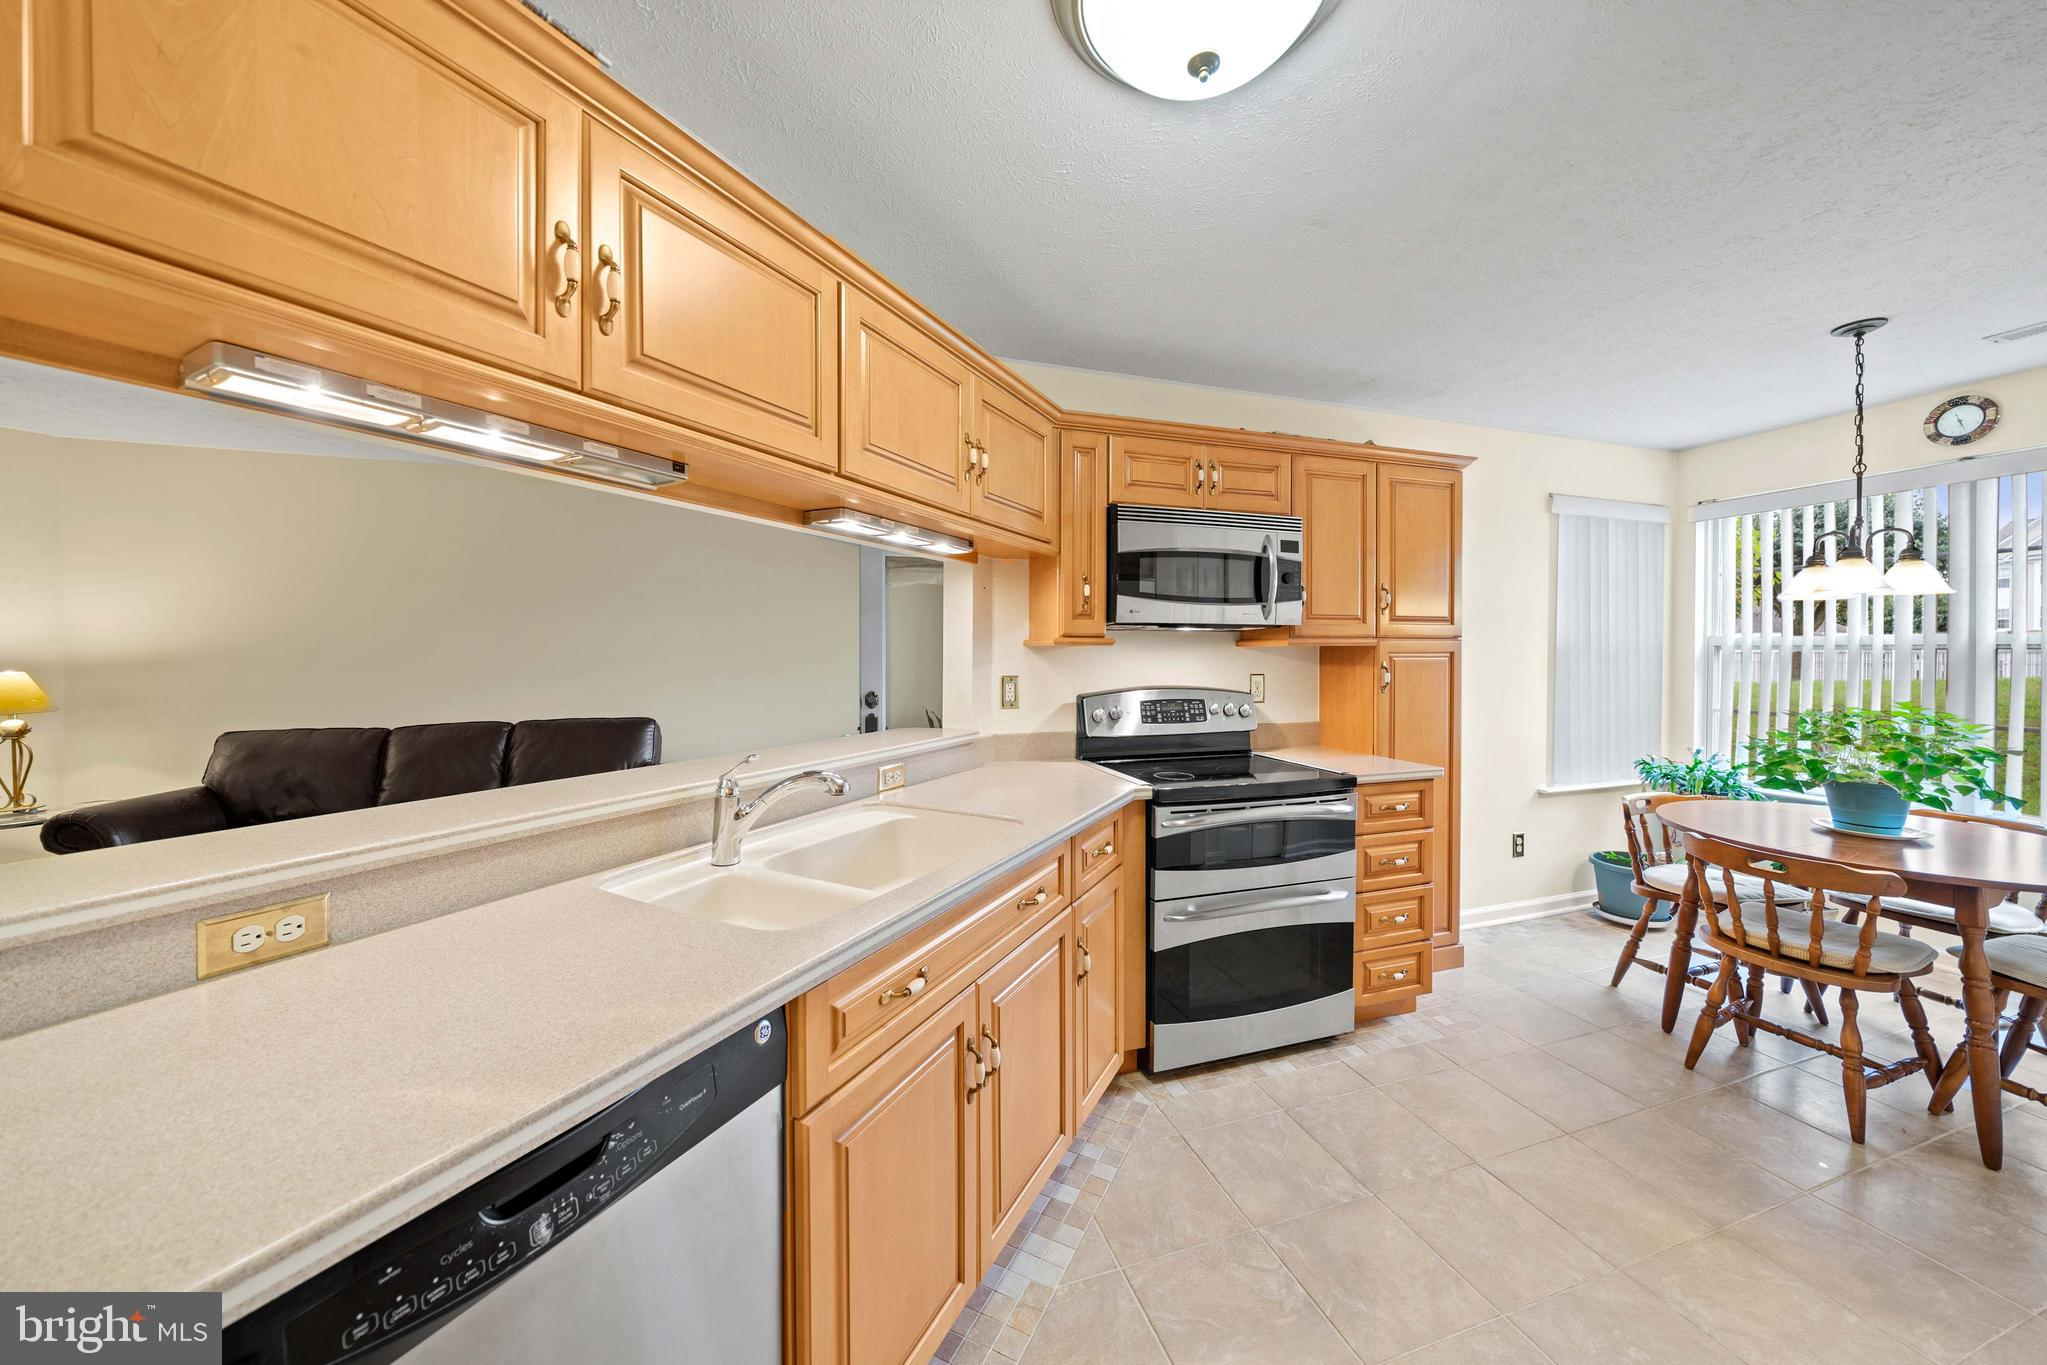 Live Authentically. Classic, light filled, 2 bed, 2 bath condo with updated kitchen in the Bayland C